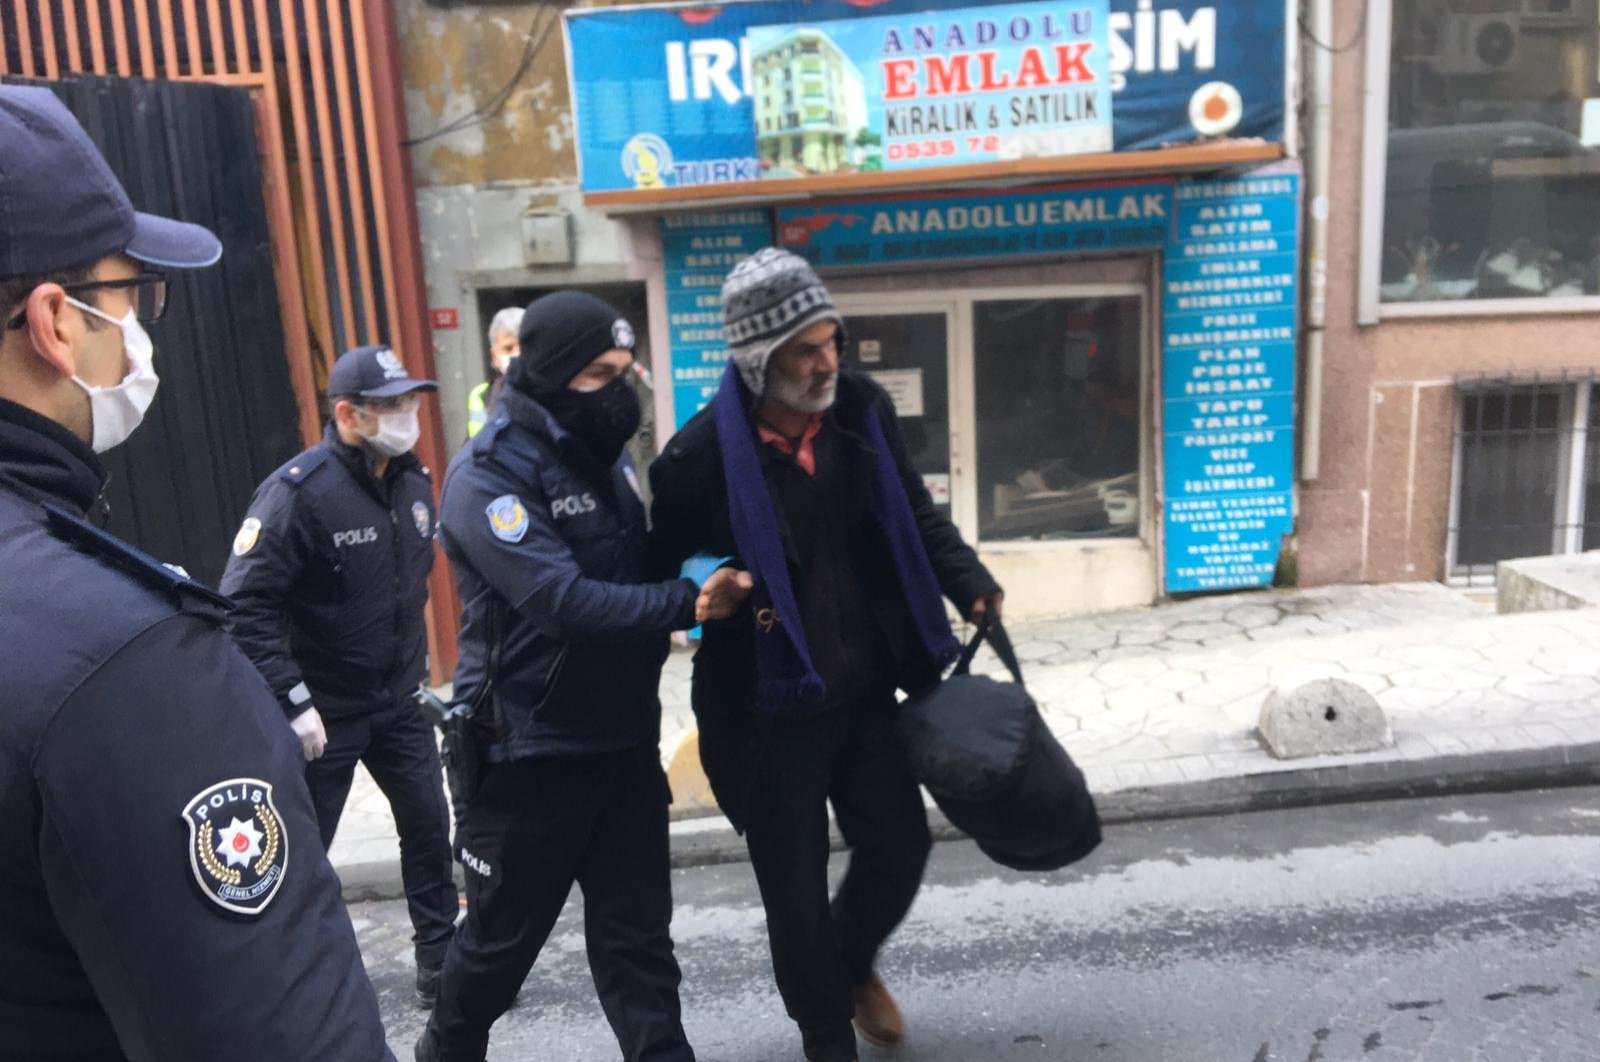 Police escort a man who reportedly fled the hospital he was taken to after being suspected of a positive case, in Beyoğlu district, Istanbul, Turkey, Friday, April 3, 2020. (DHA Photo)